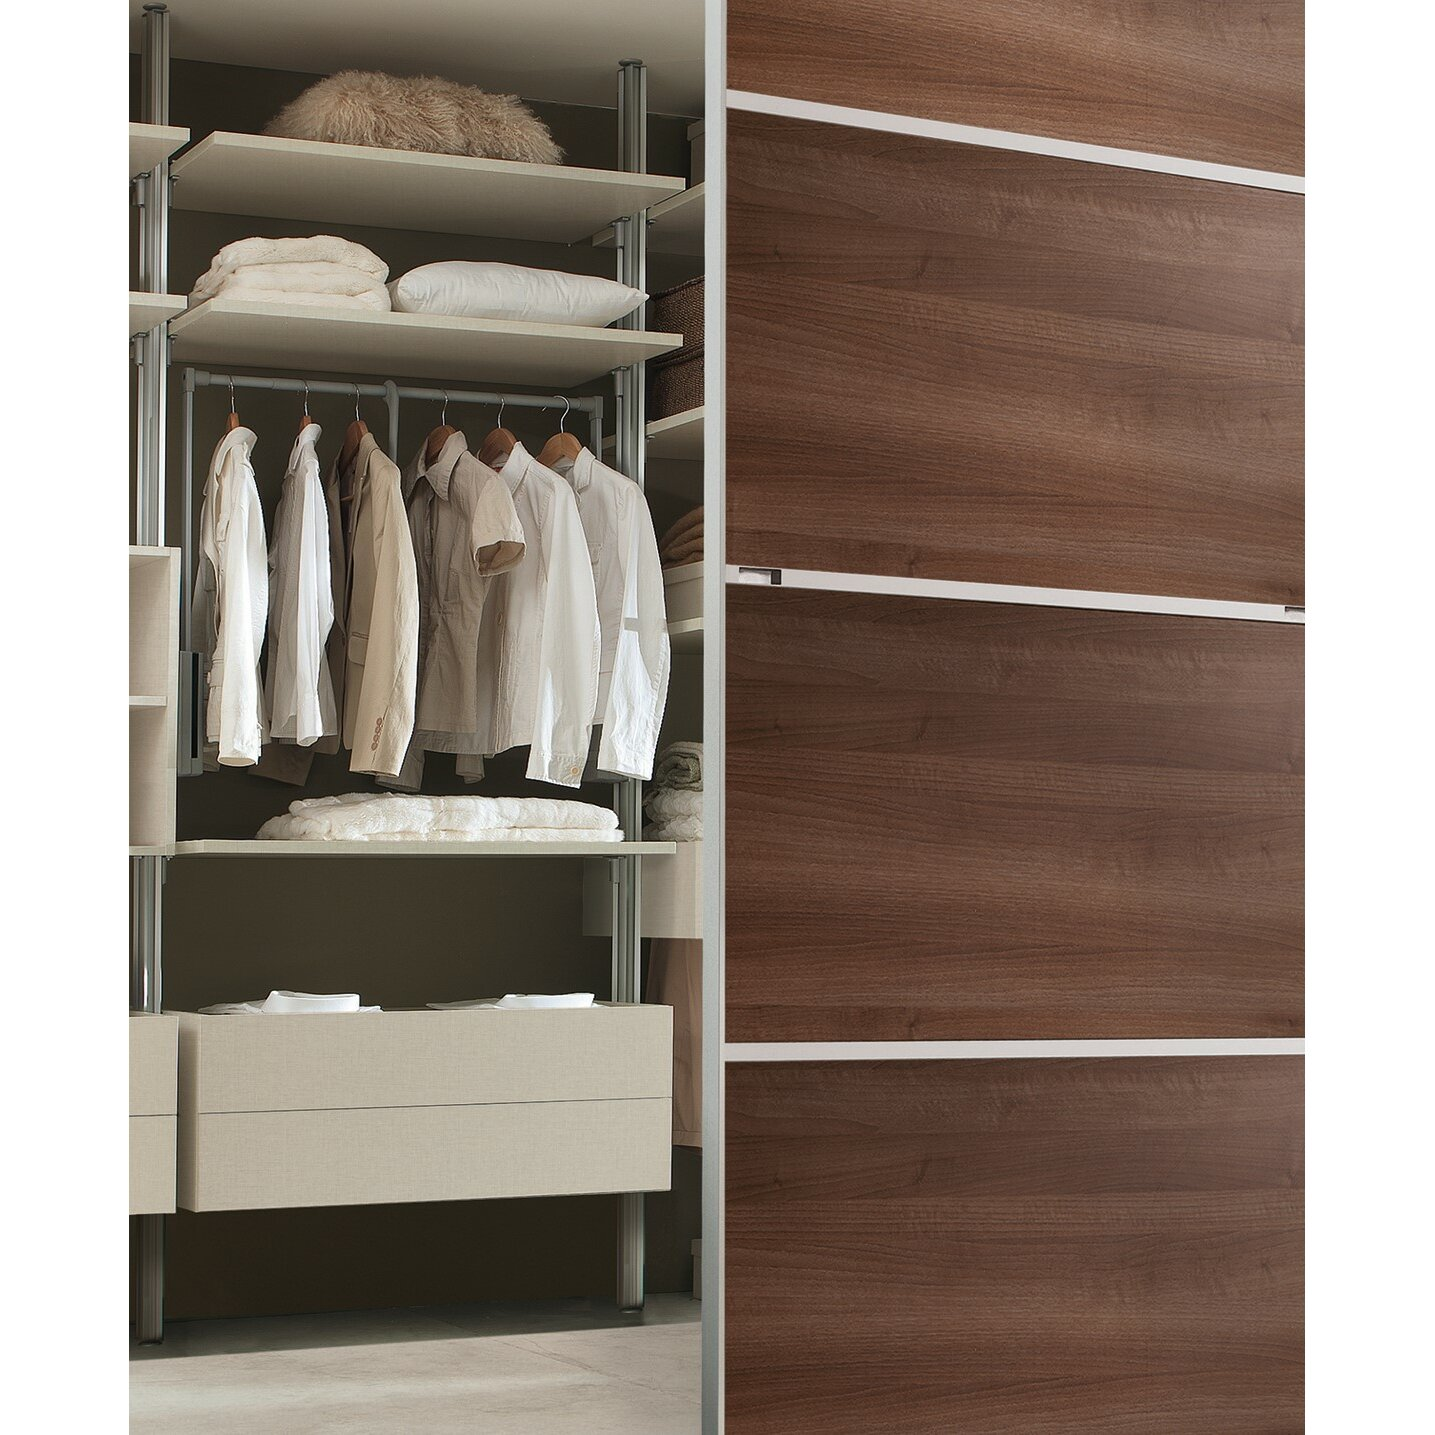 Pull Down Clothes Rod Closet Pull Down: Space Pro Relax Pull-down Closet Rod & Reviews